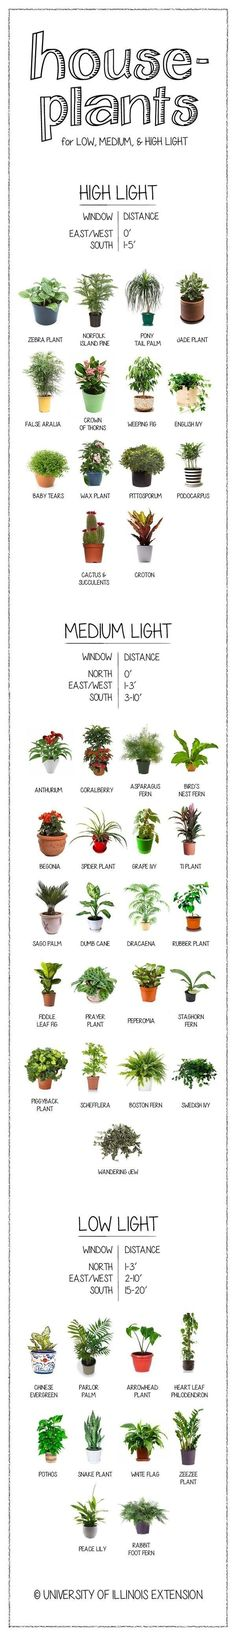 Diagrams That Make Gardening So Much Easier So useful right now: a visual guide to houseplants, according to their need for light.So useful right now: a visual guide to houseplants, according to their need for light. Container Gardening, Gardening Tips, Indoor Gardening, Urban Gardening, Organic Gardening, Vegetable Gardening, Succulent Containers, Succulent Planters, Hydroponic Gardening